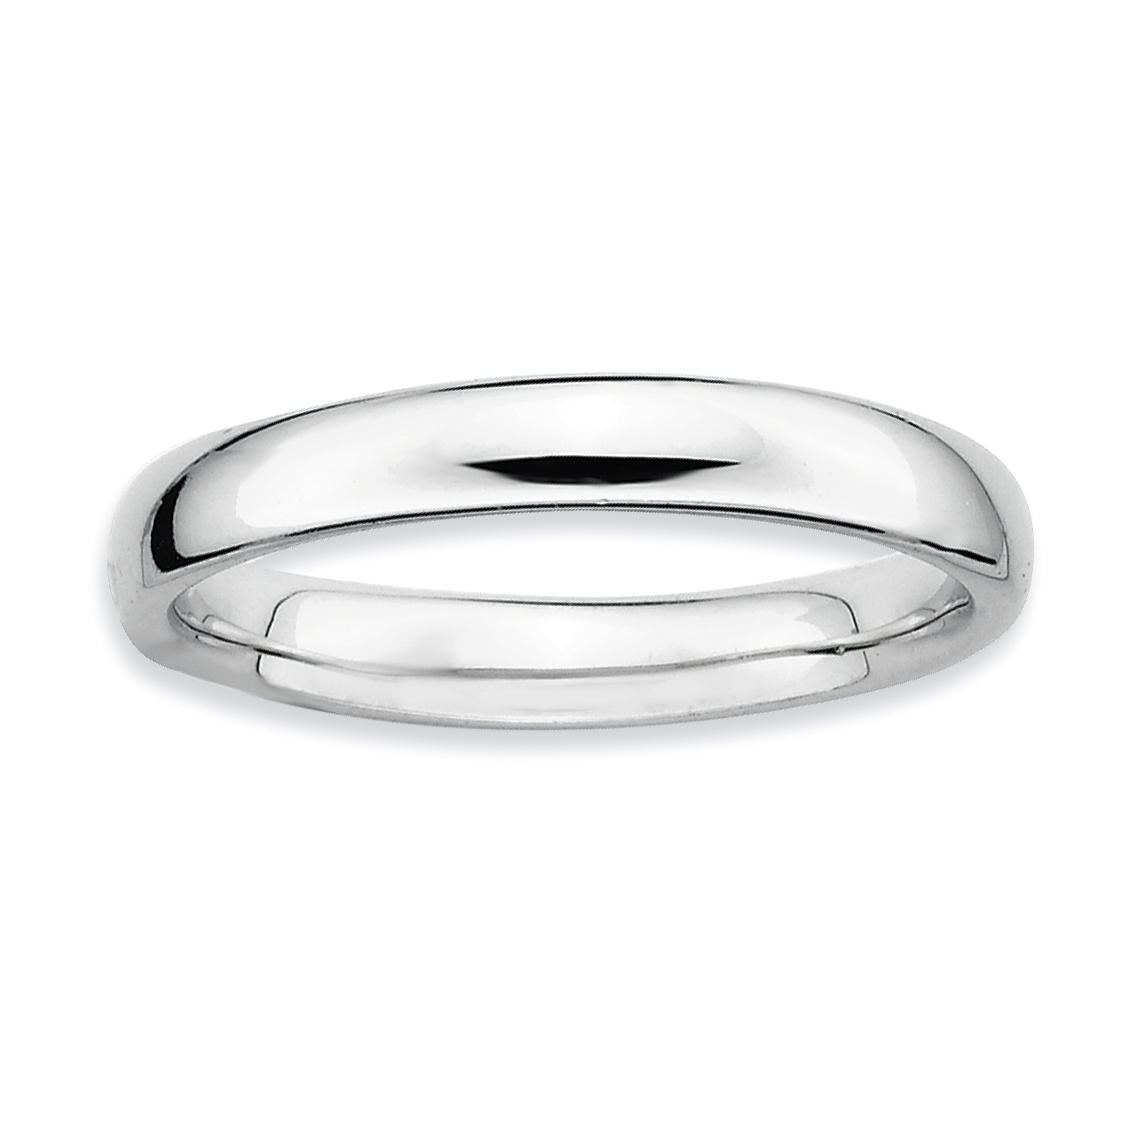 925 Sterling Silver Band Ring Size 7.00 Stackable Smooth Fine Jewelry Gifts For Women For Her - image 4 of 4